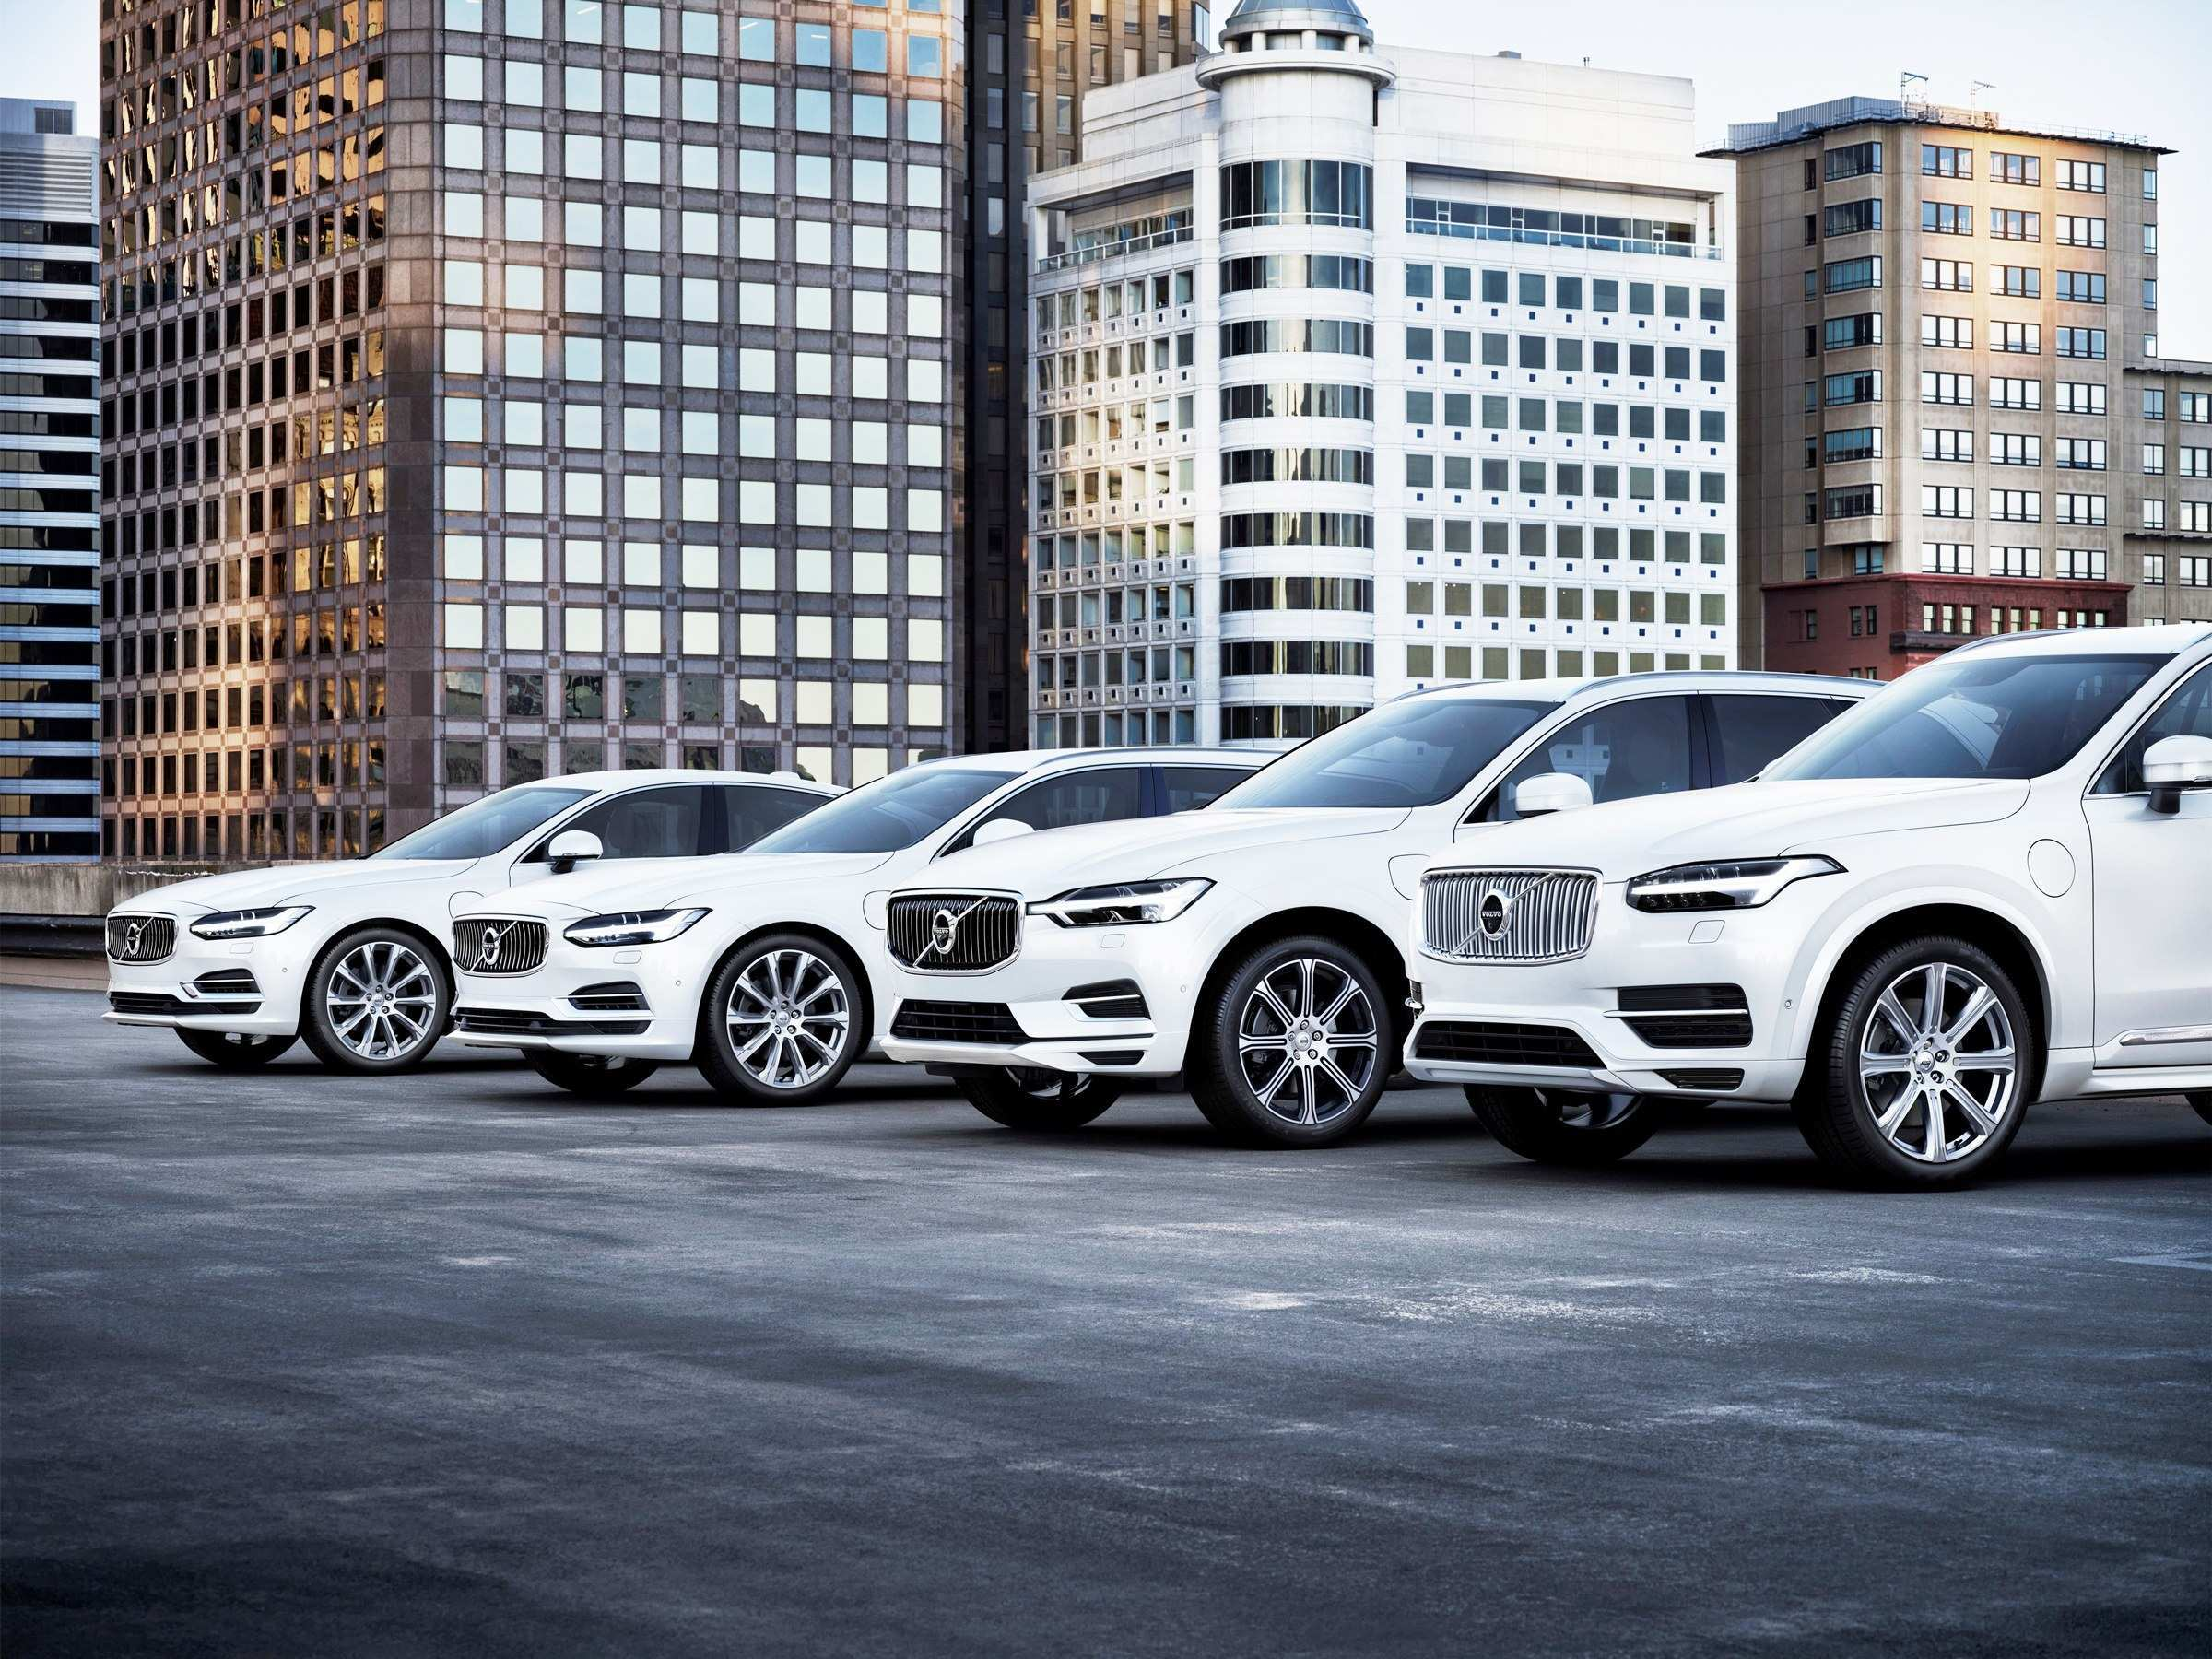 19 Great Volvo To Go Electric By 2020 Overview for Volvo To Go Electric By 2020